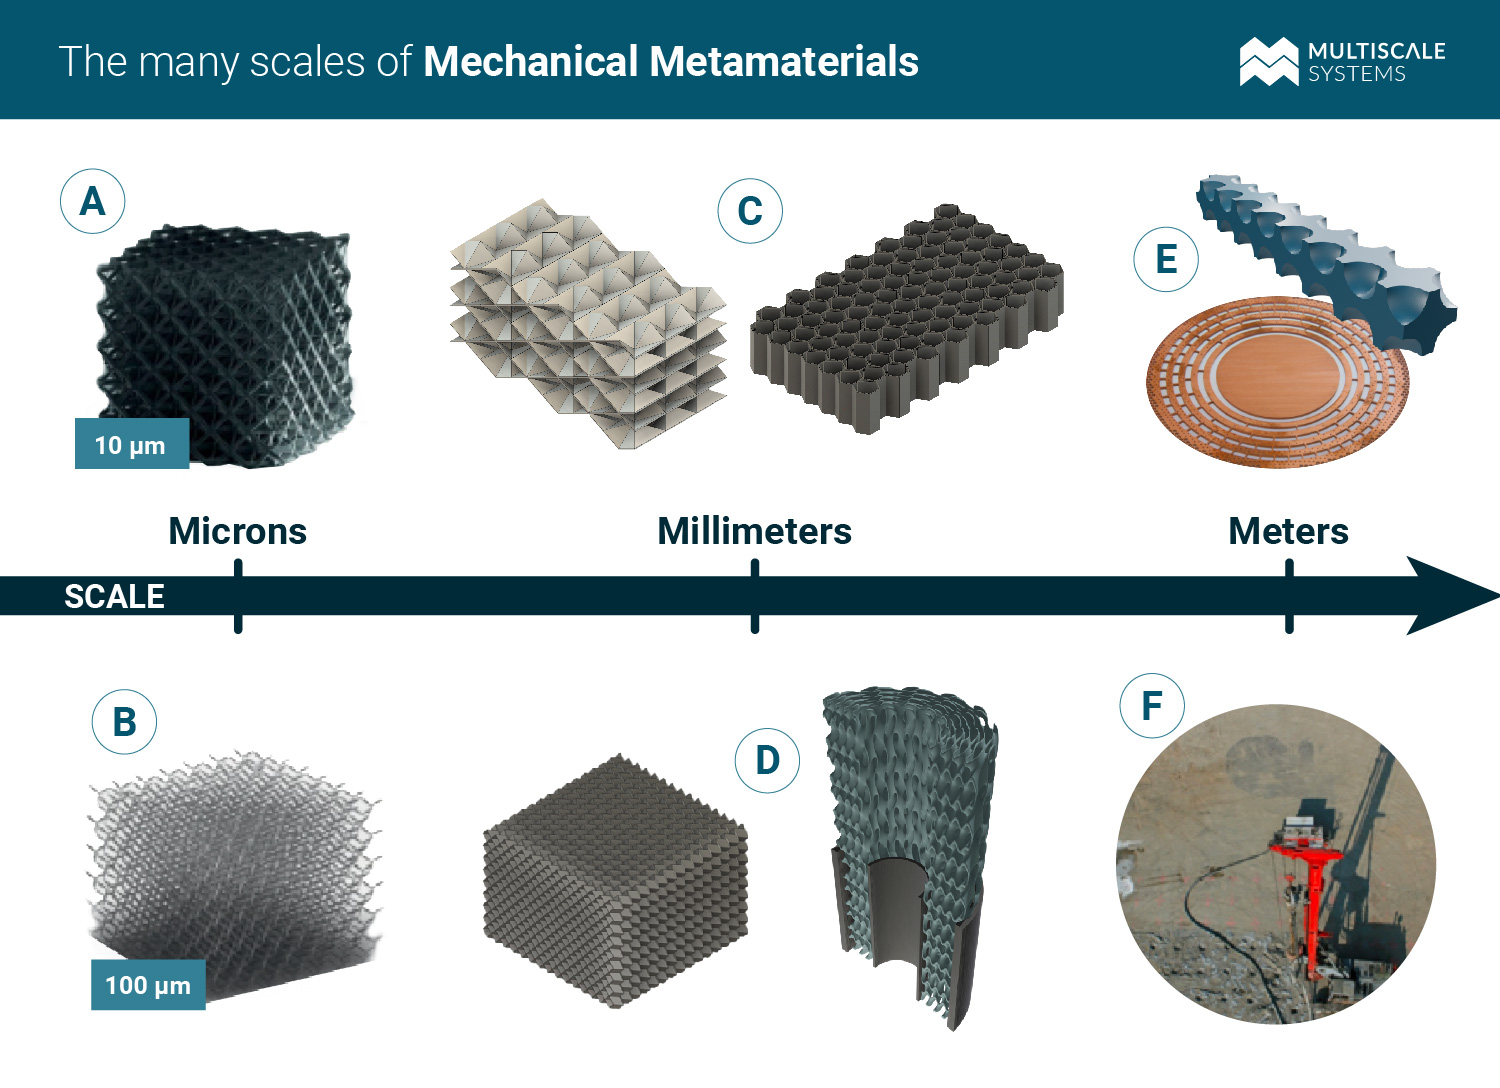 visual examples of mechanical metamaterials at micron, millimeter, and meter scale